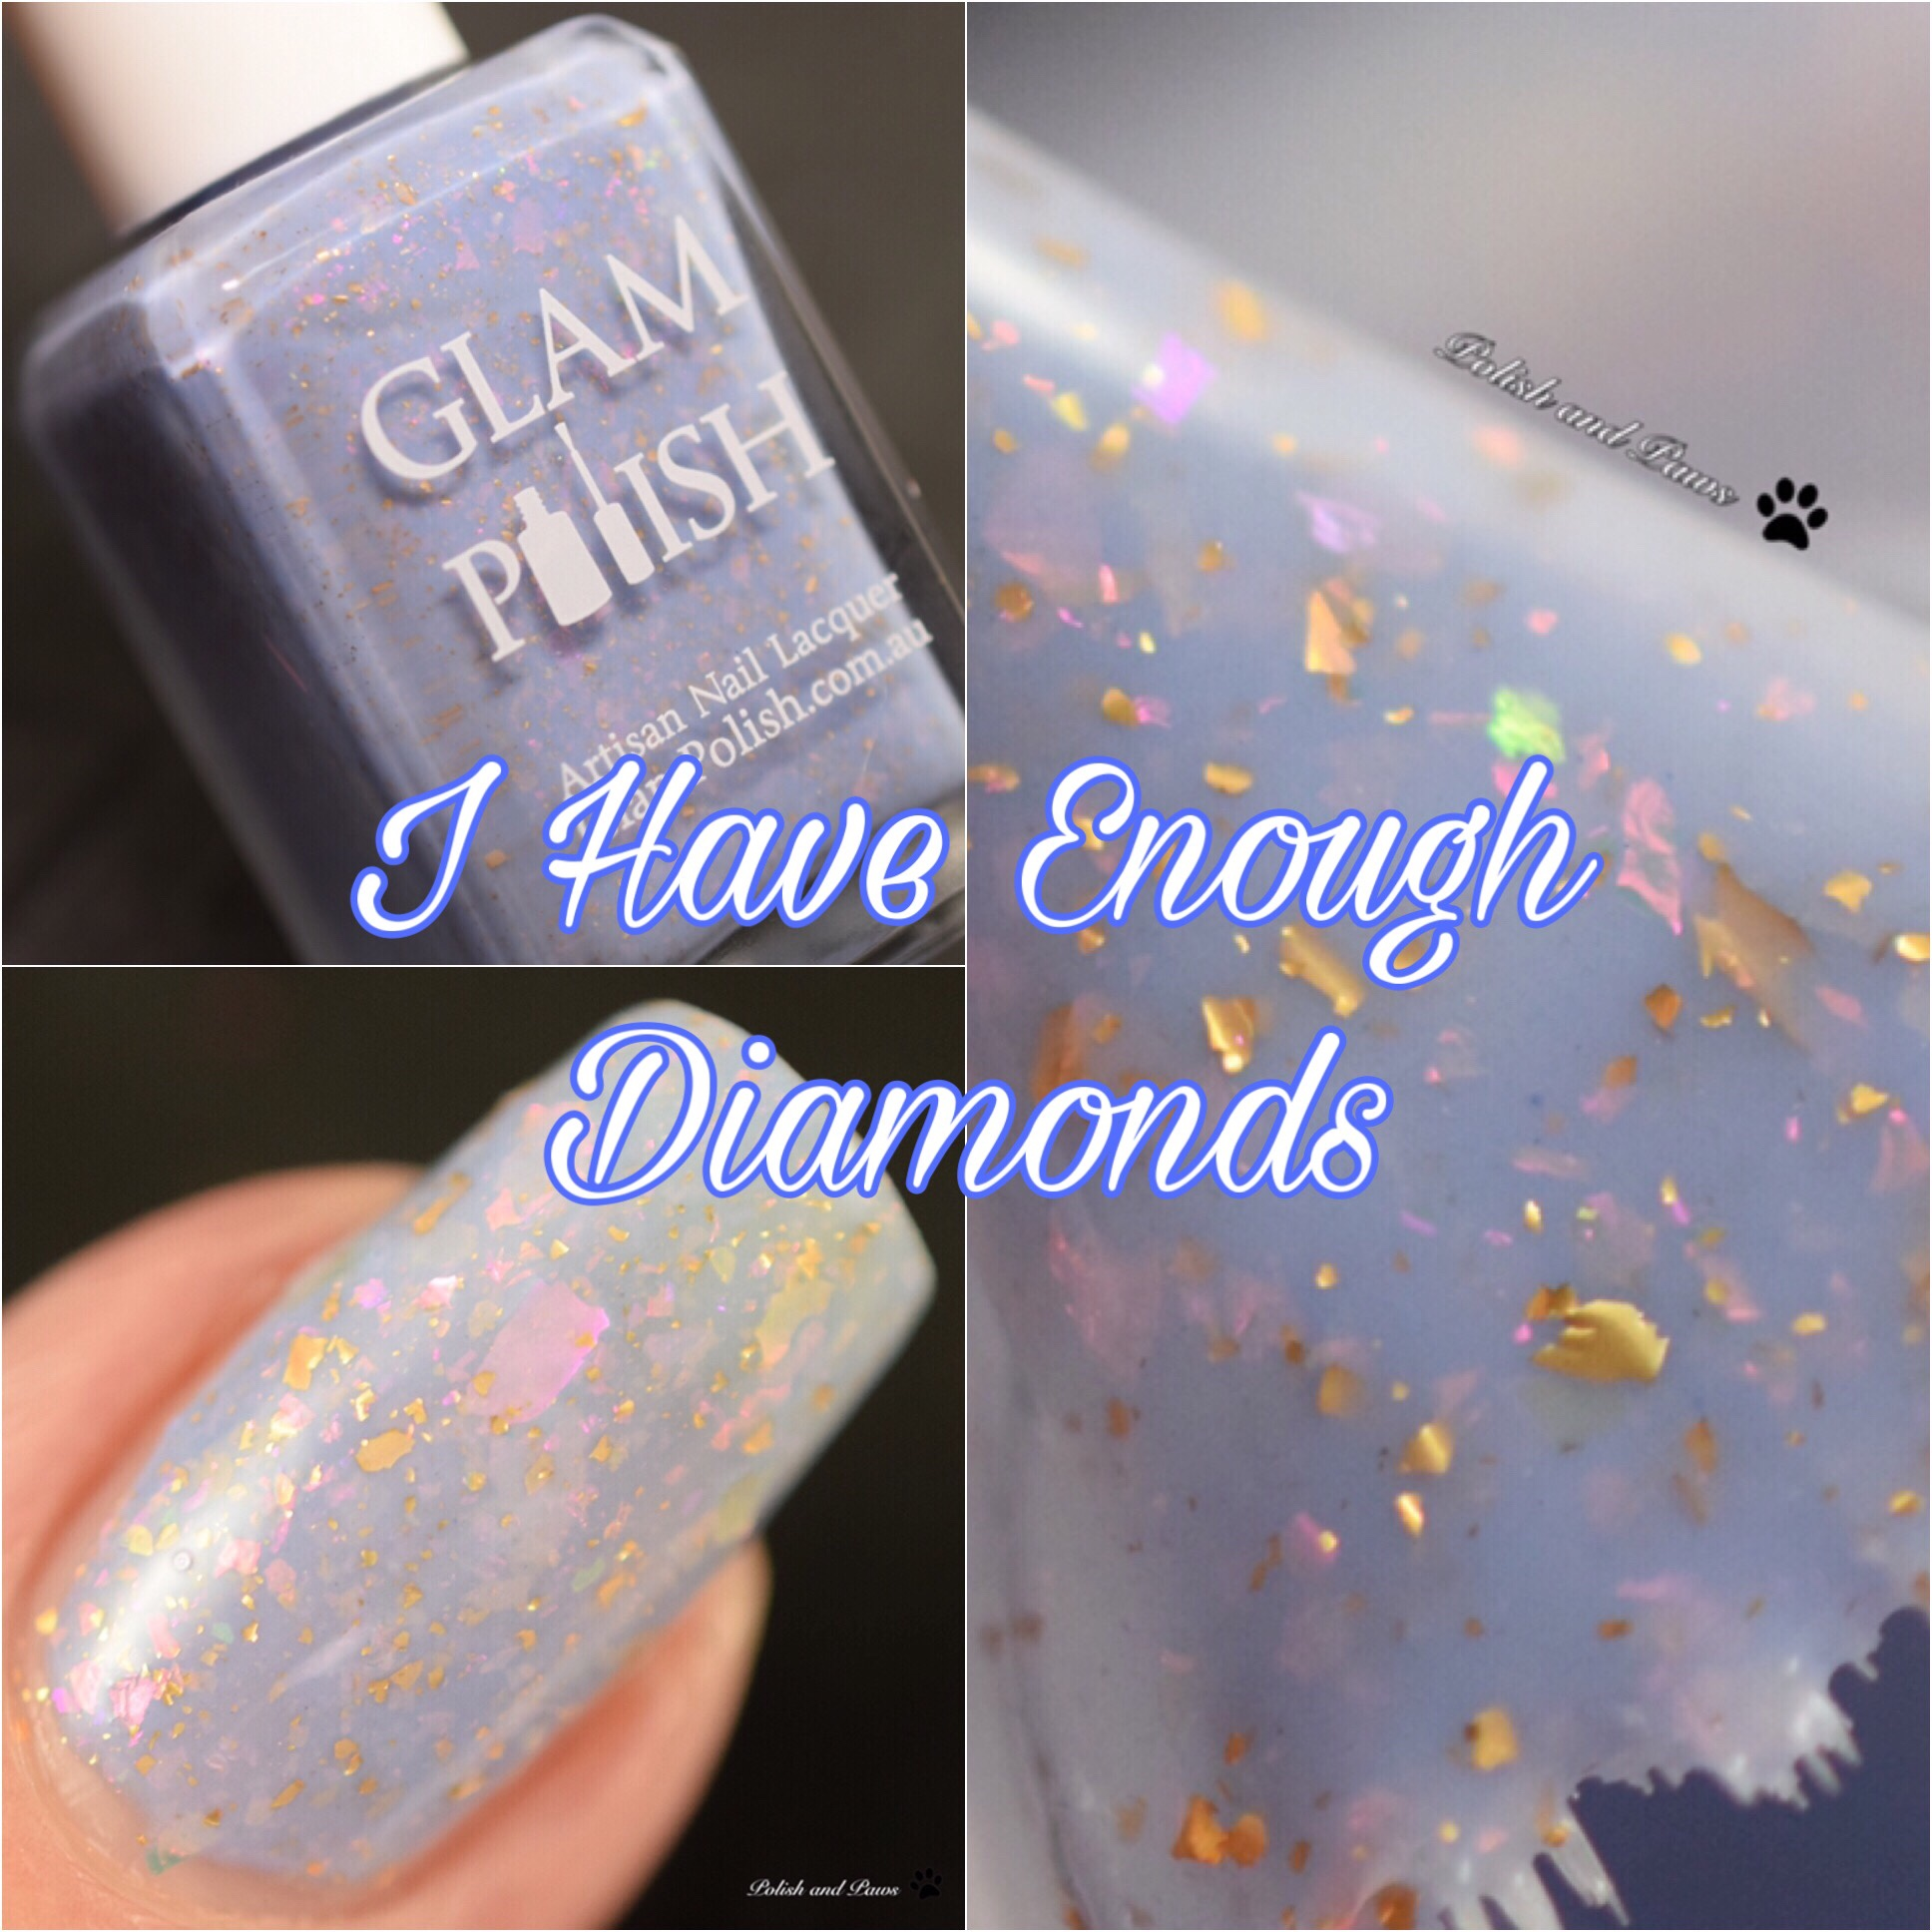 Glam Polish I Have Enough Diamonds